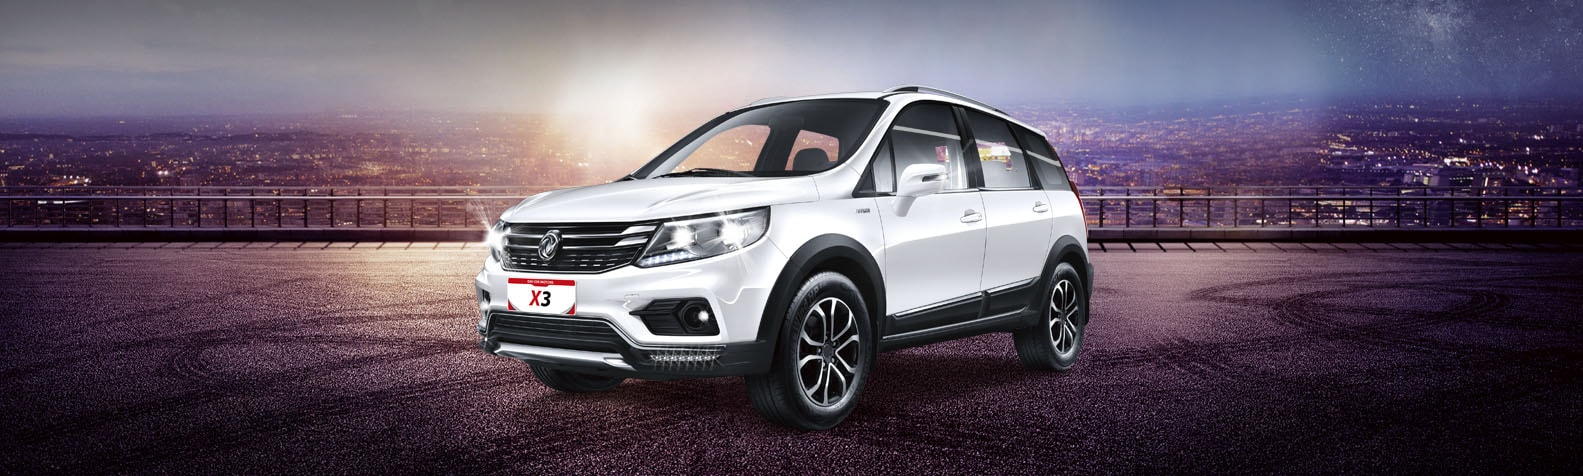 DONGFENG_X3_